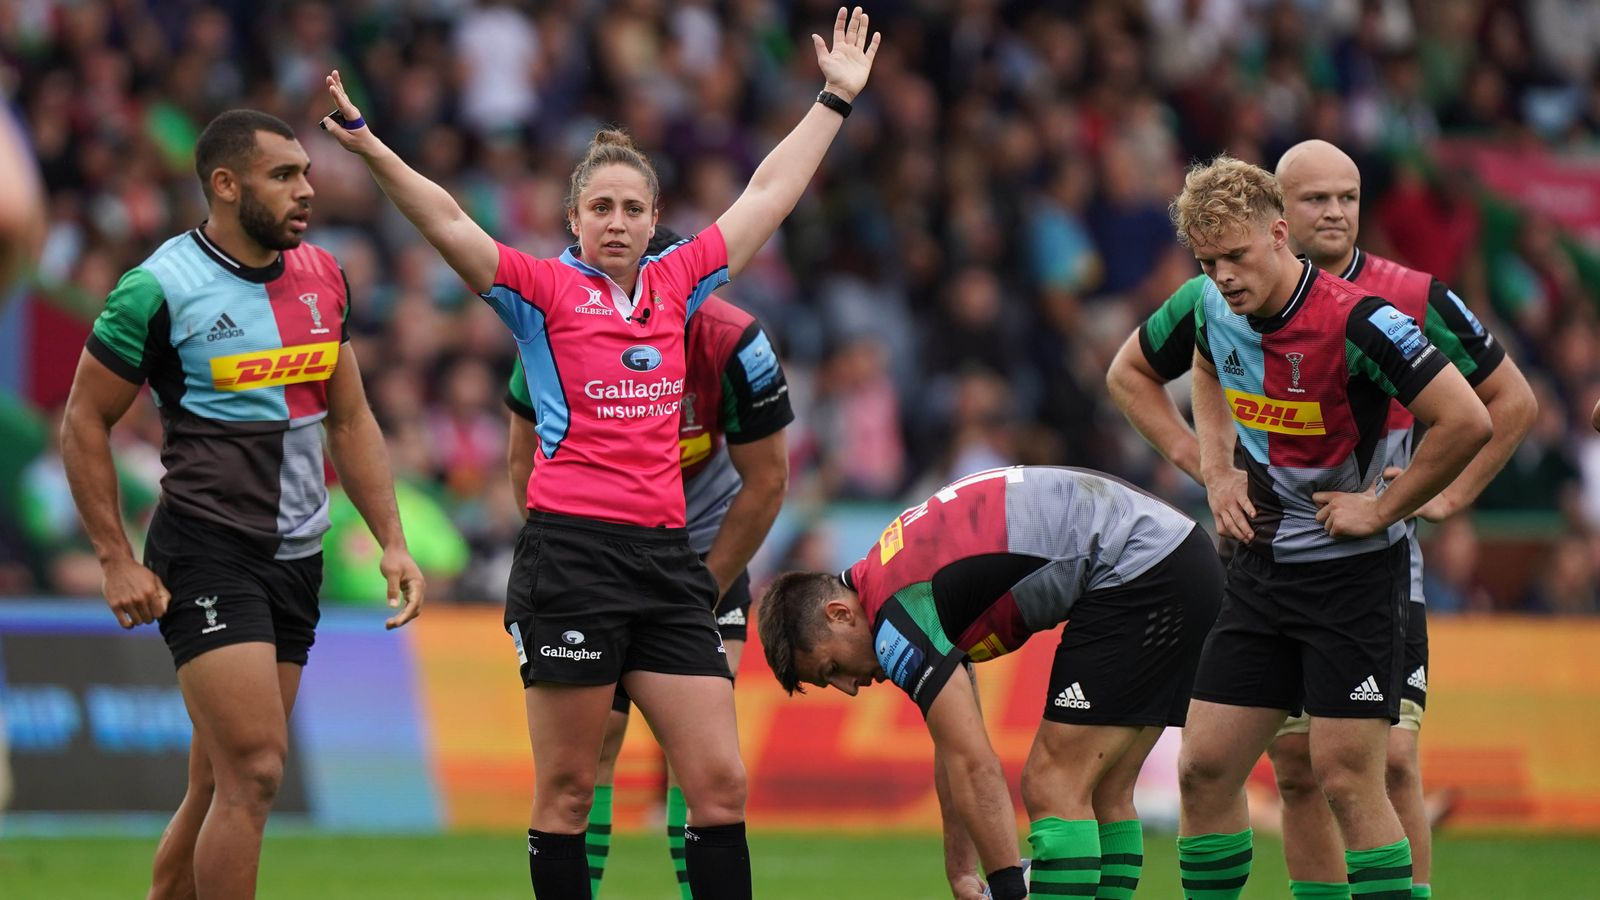 Sara Cox: Gallagher Premiership's first female referee striving to stay at the top of the game